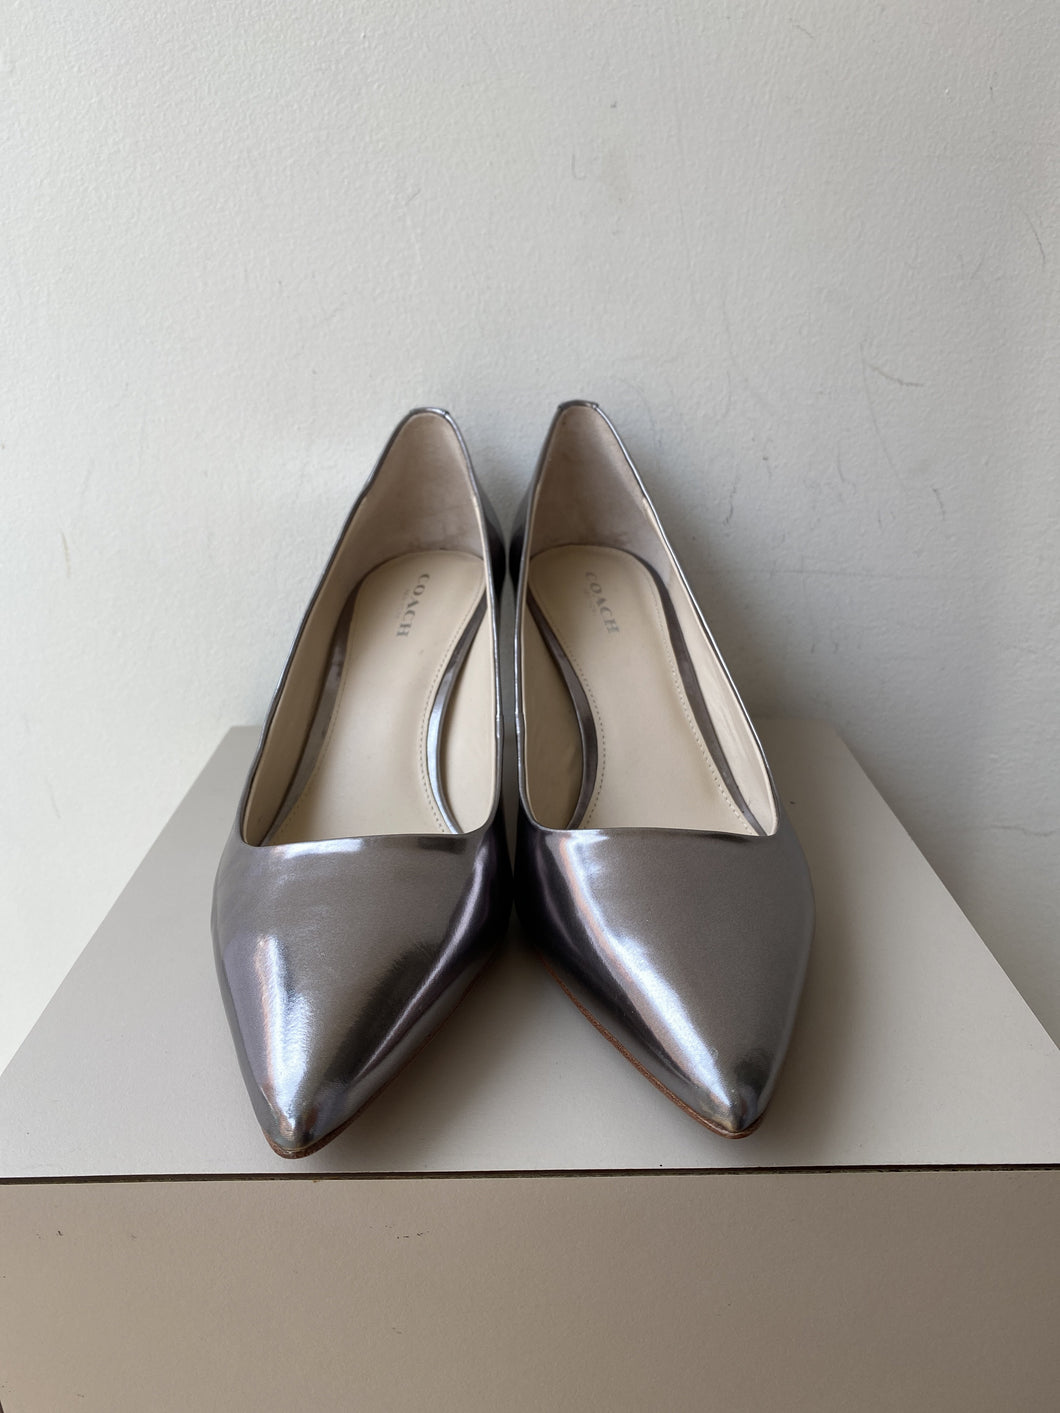 Coach silver metallic leather pumps size 8.5 - My Girlfriend's Wardrobe York Pa